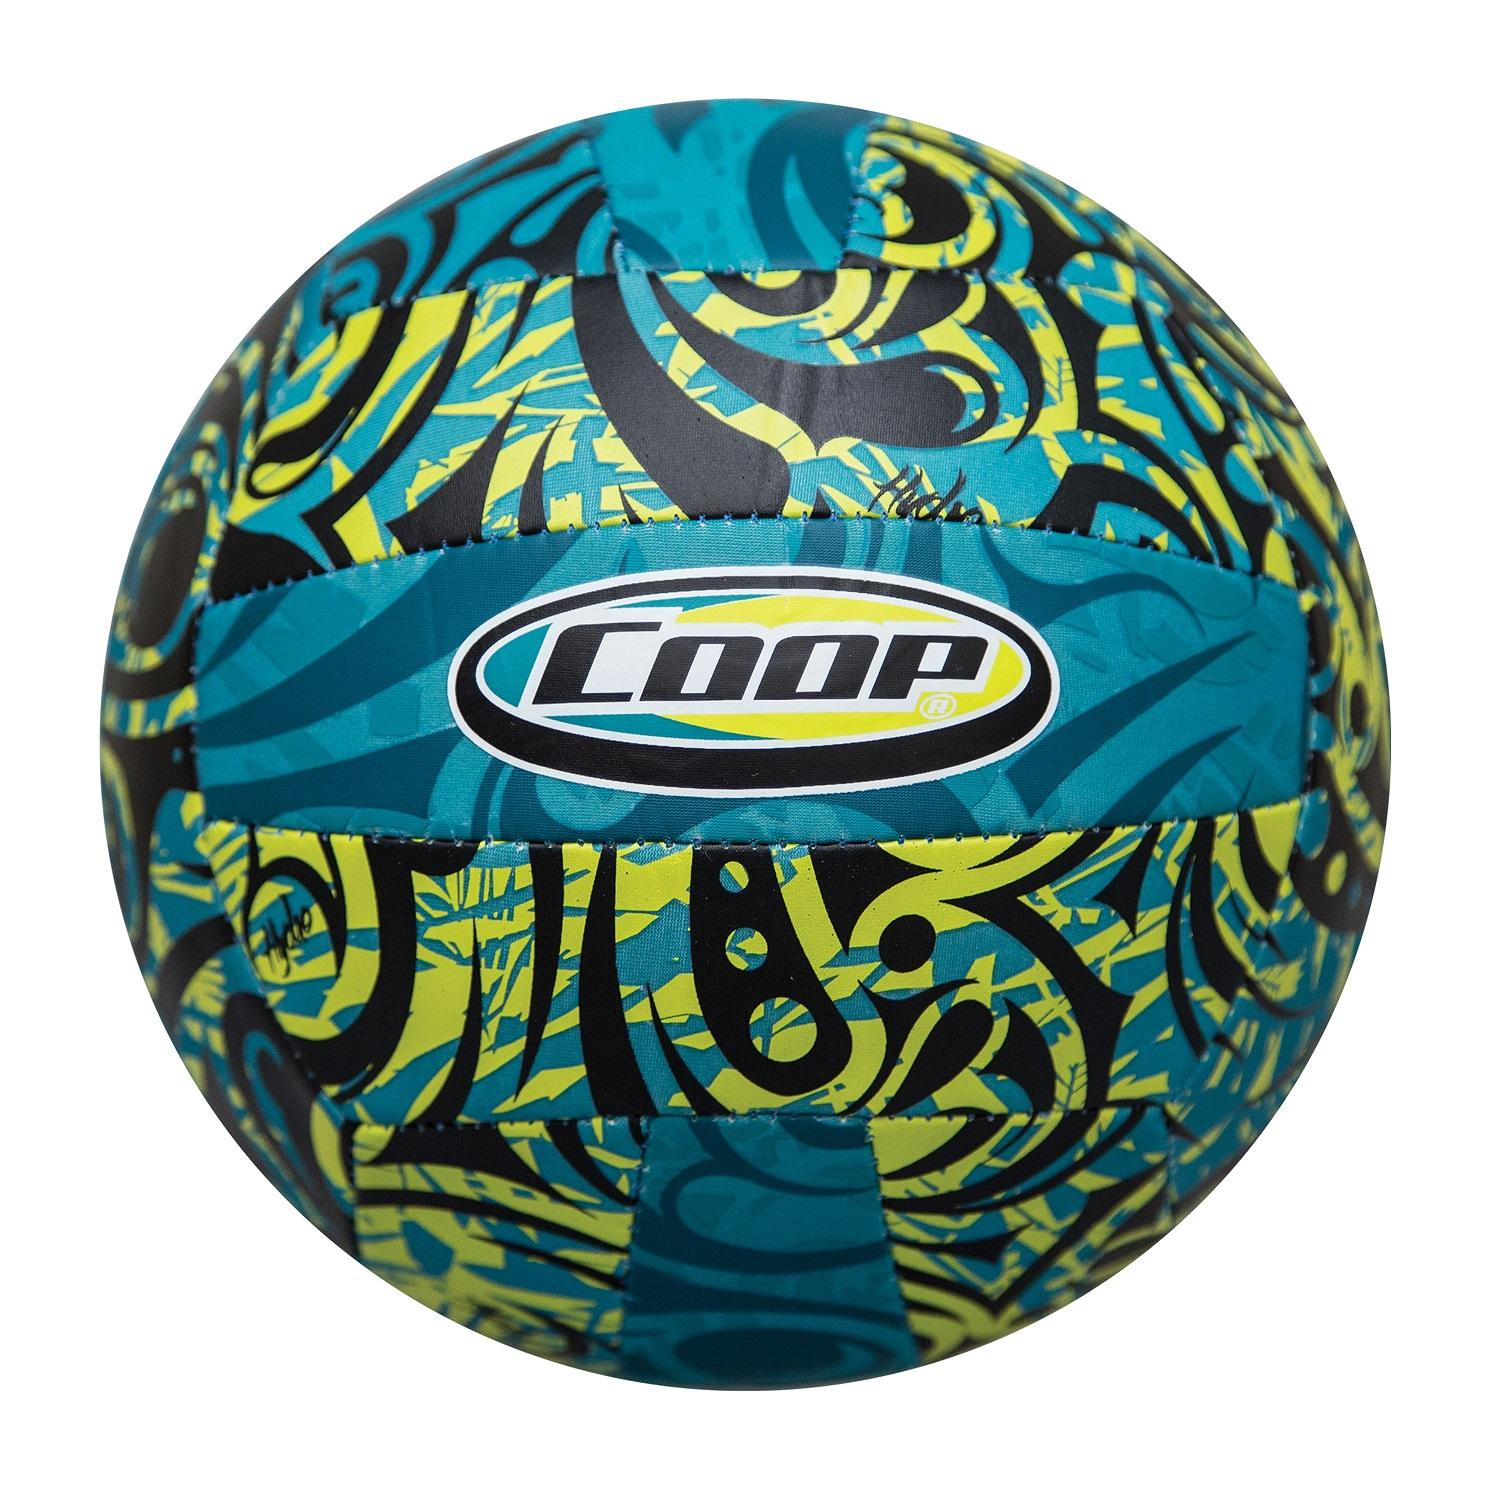 """8"""" Tribal Lime and Turquoise High Performance Hydro Volleyball Swimming Pool Toy by Swim Way"""